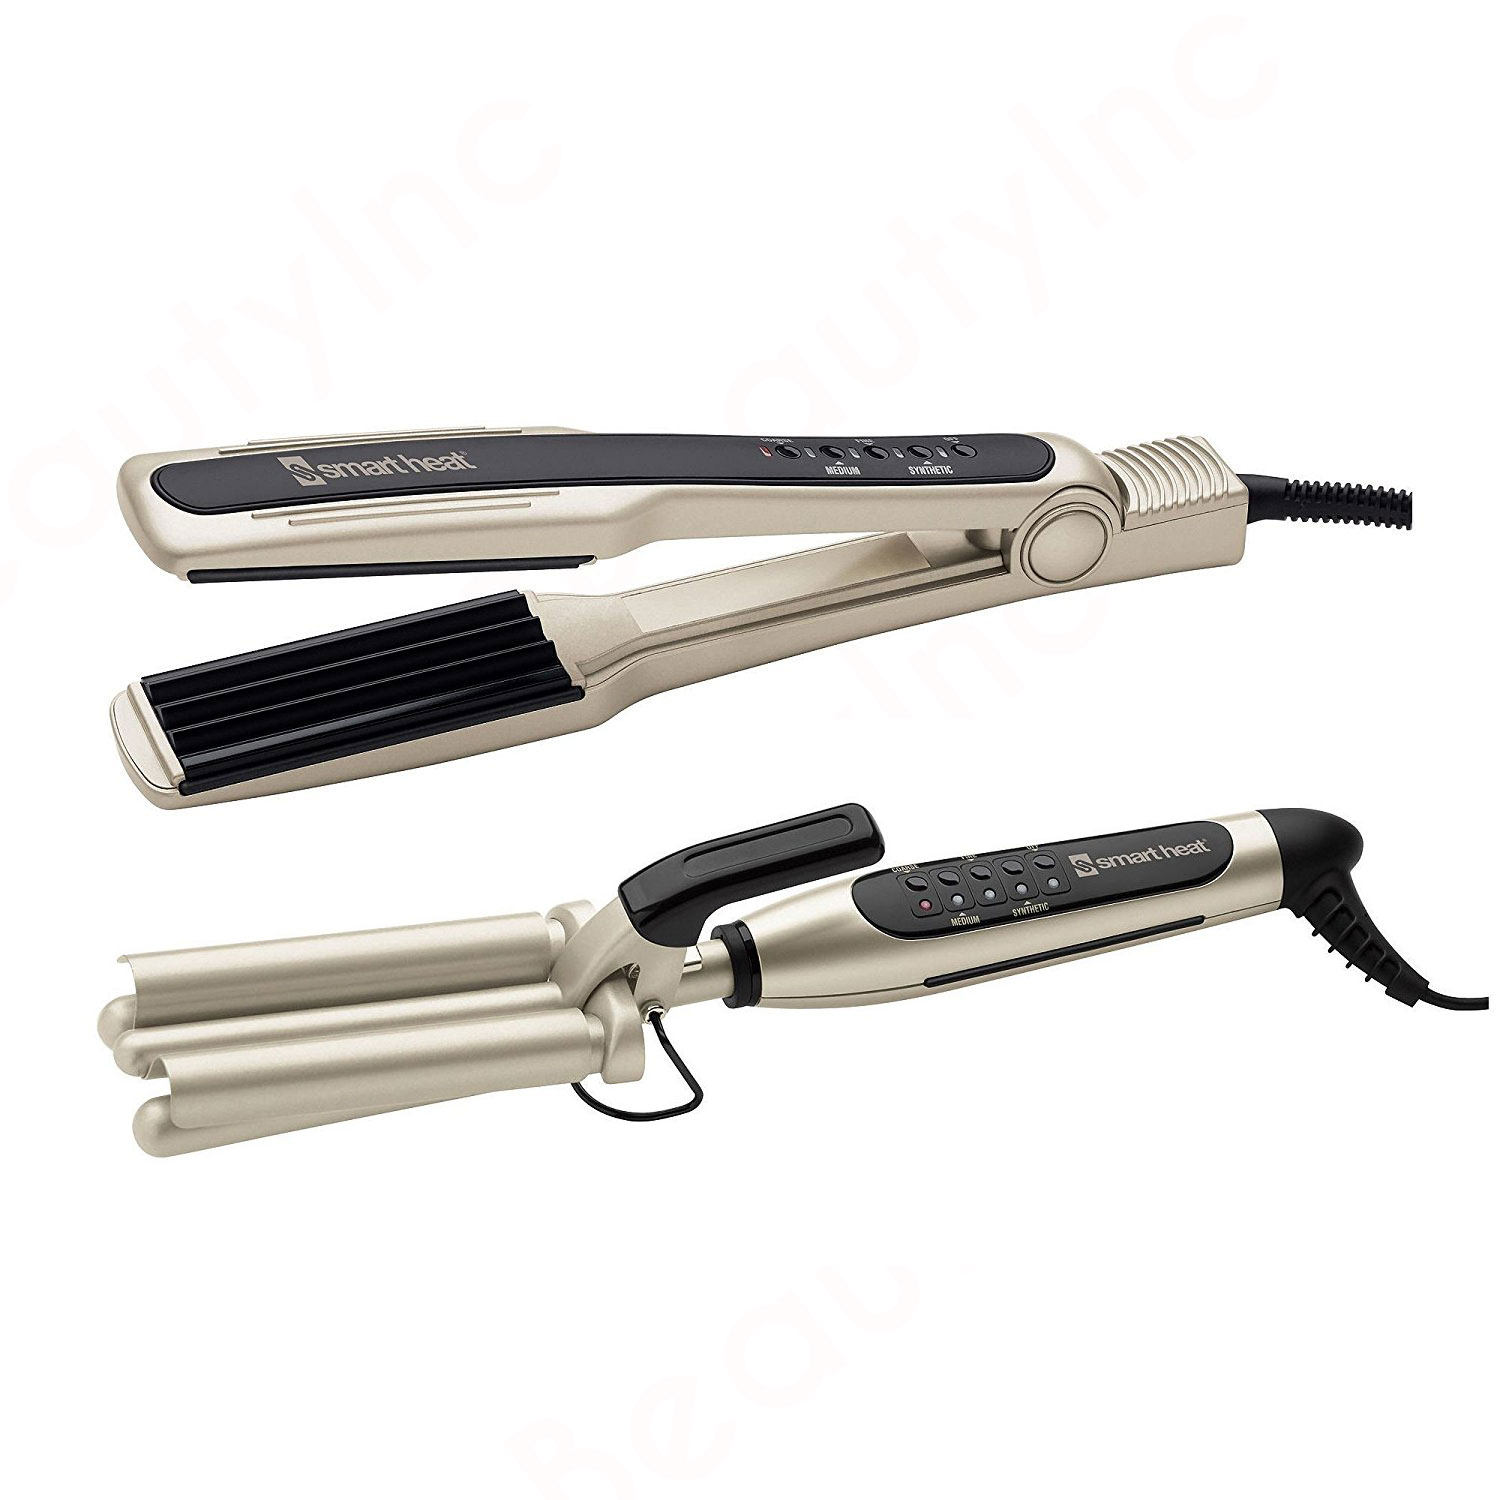 Image of Belson Pro Smart Heat Triple Barrel Waver Crimping Iron Set